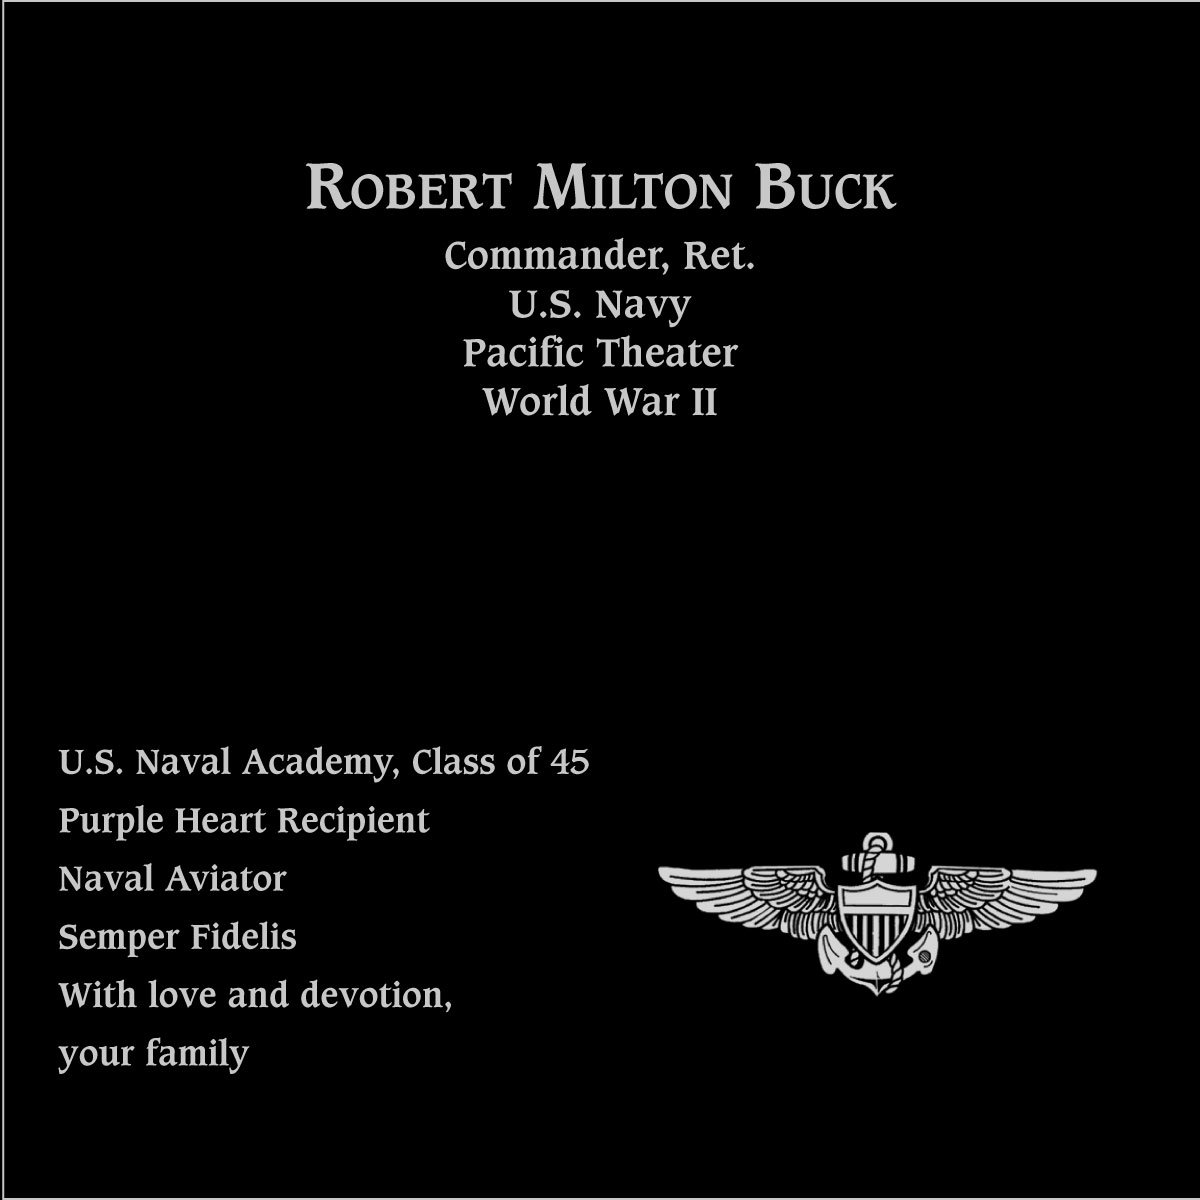 Robert Milton Buck